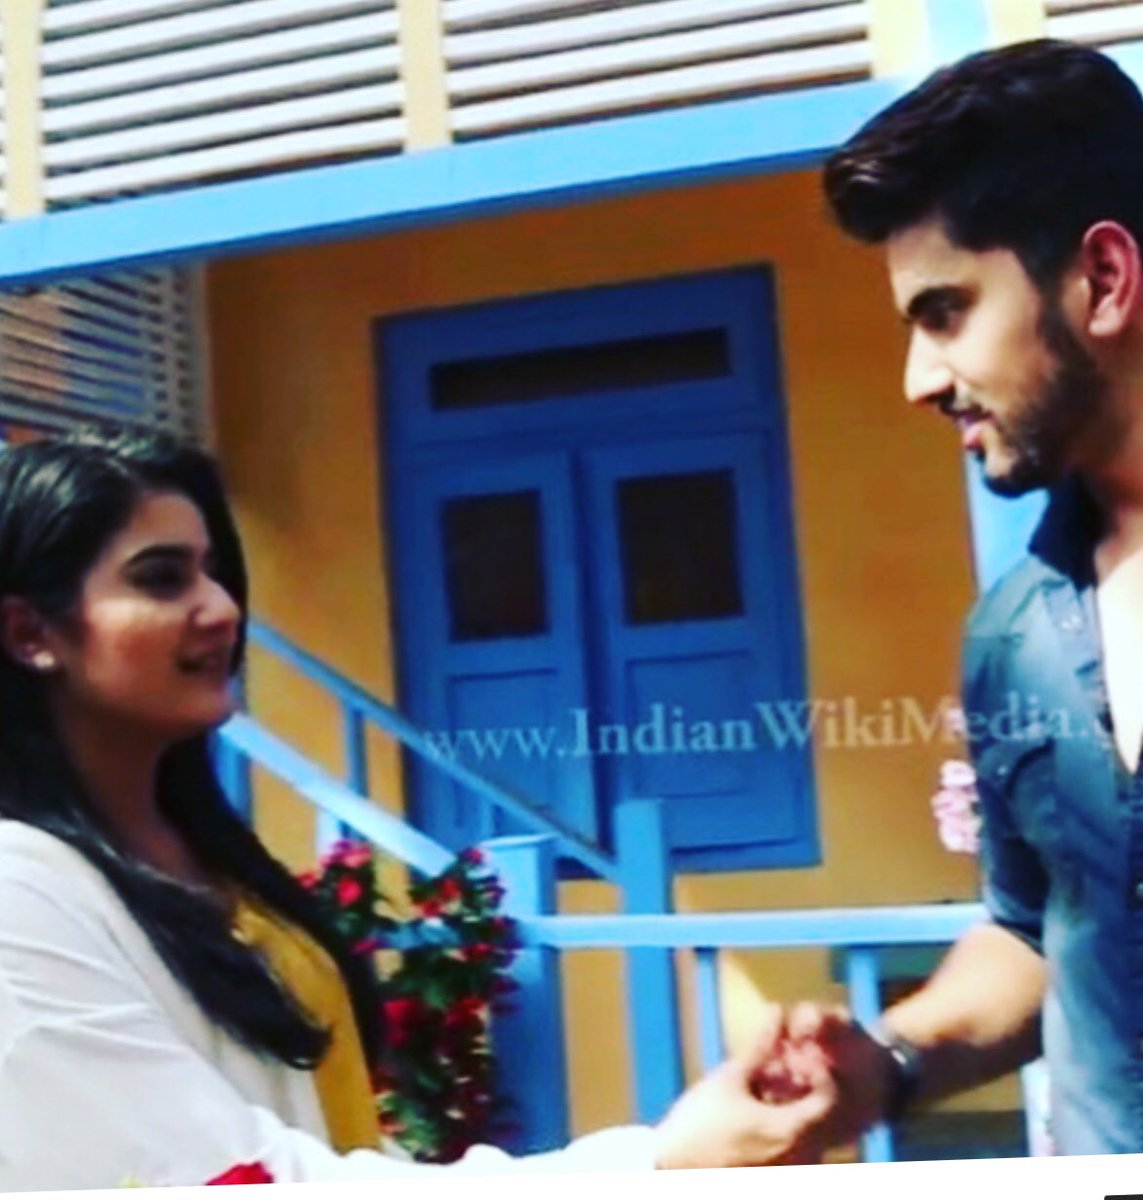 Thumb fight , in Adiza case it was another level .  I vote for #AditiRathore for #Naamkarann In #TVPersonality2018 @SabrasRadio<br>http://pic.twitter.com/rBAO1l0Oee